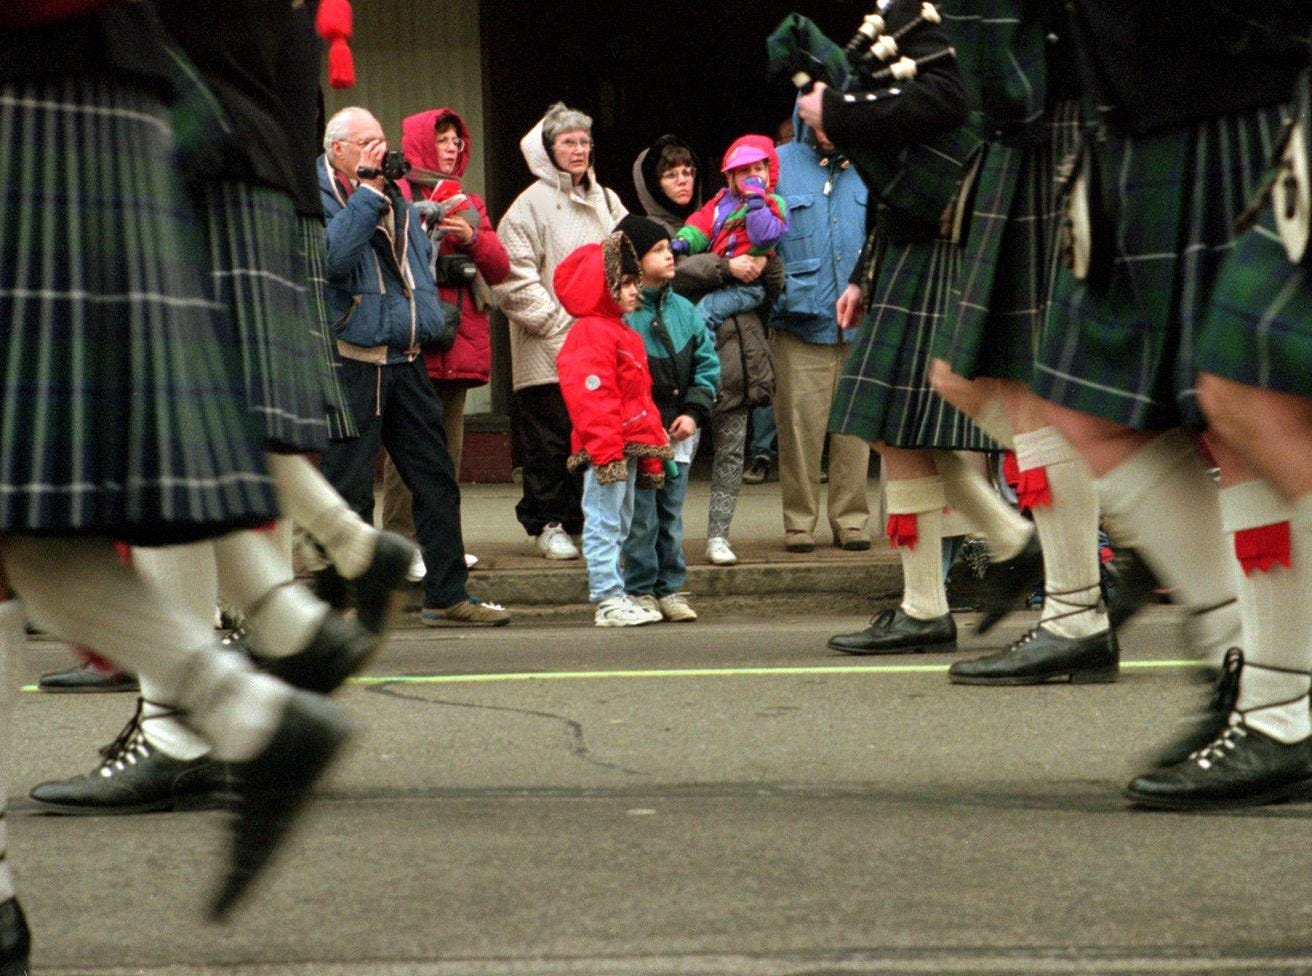 1997: Despite the cold temperatures Saturday, dozens of kilts were seen on Court Street as bagpipe bands played to the delight of onlookers.